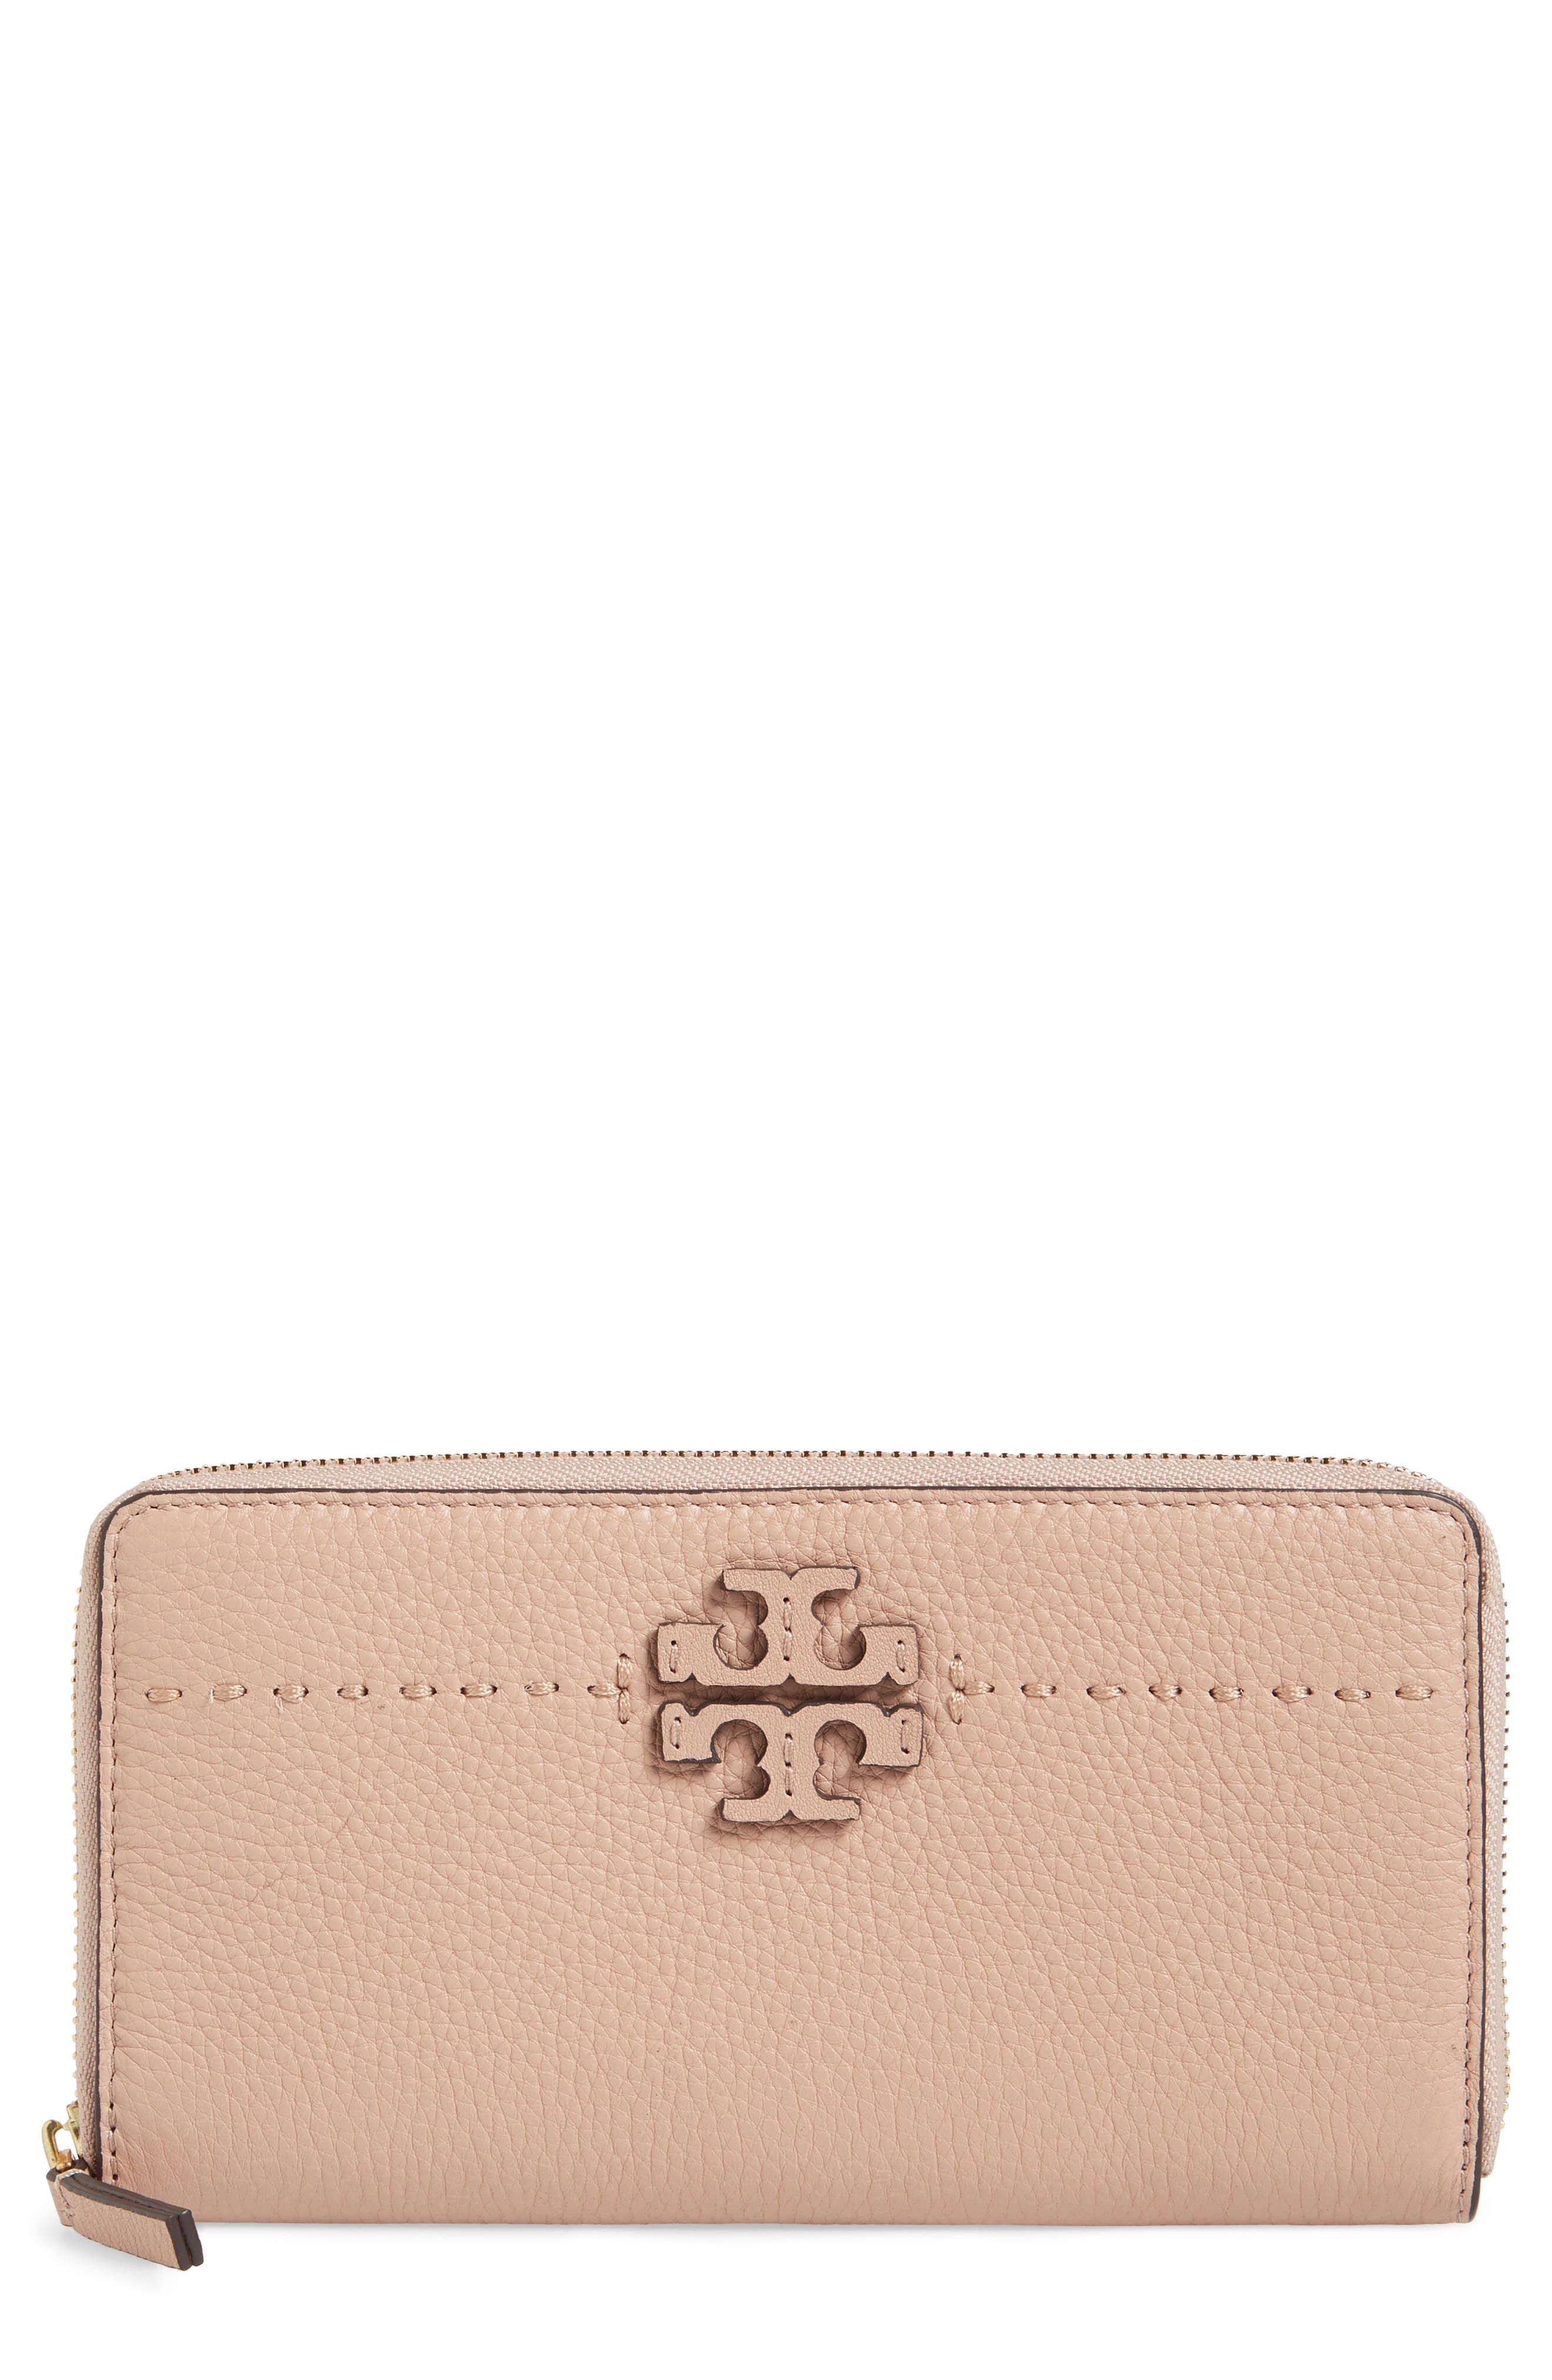 McGraw Leather Continental Zip Wallet,                         Main,                         color, Devon Sand